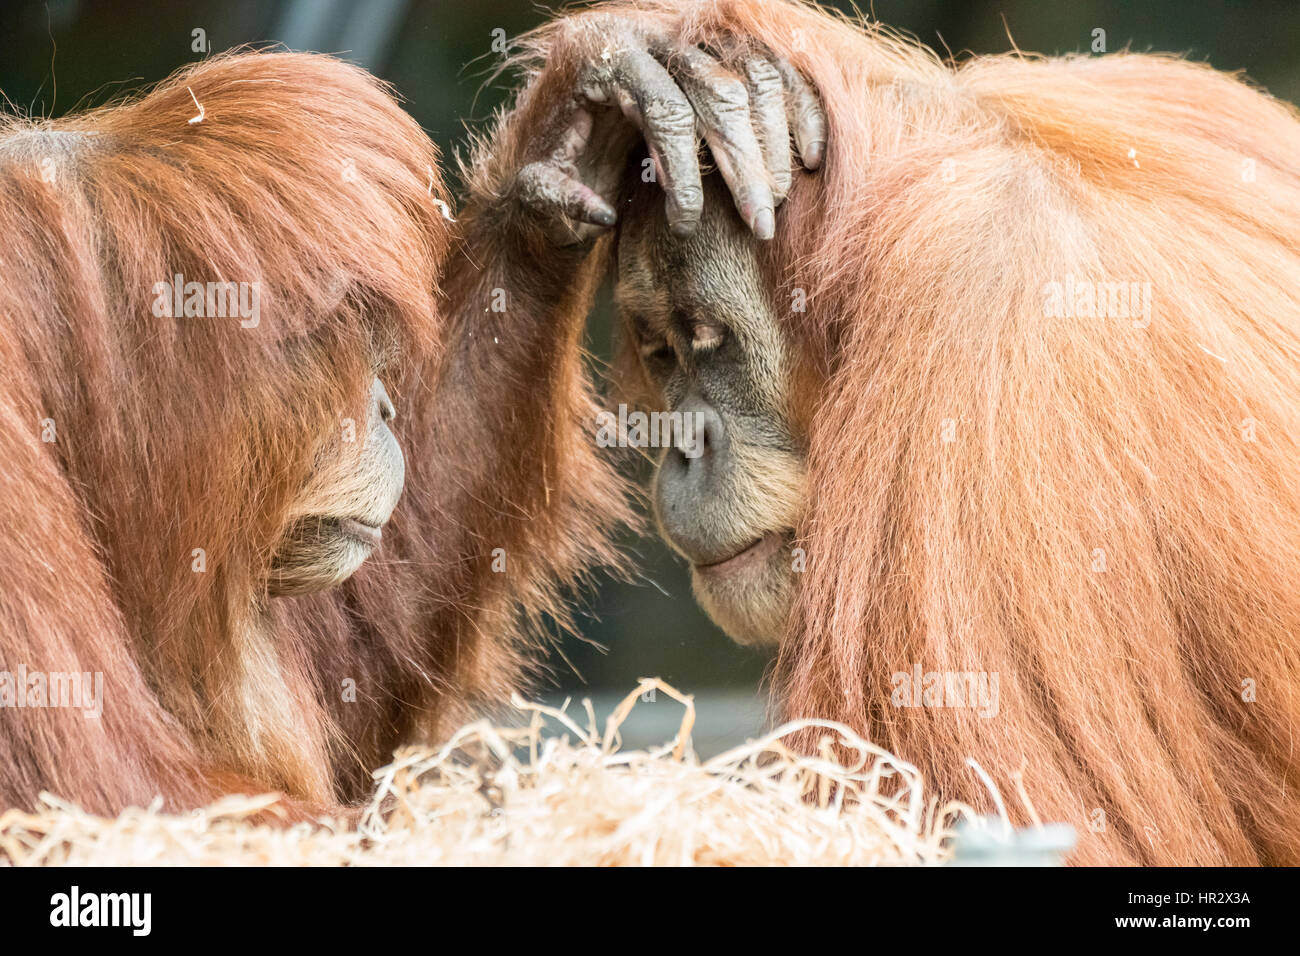 Two orangutans are caught in an intimate moment where they are gently touching each others faces in a comforting - Stock Image